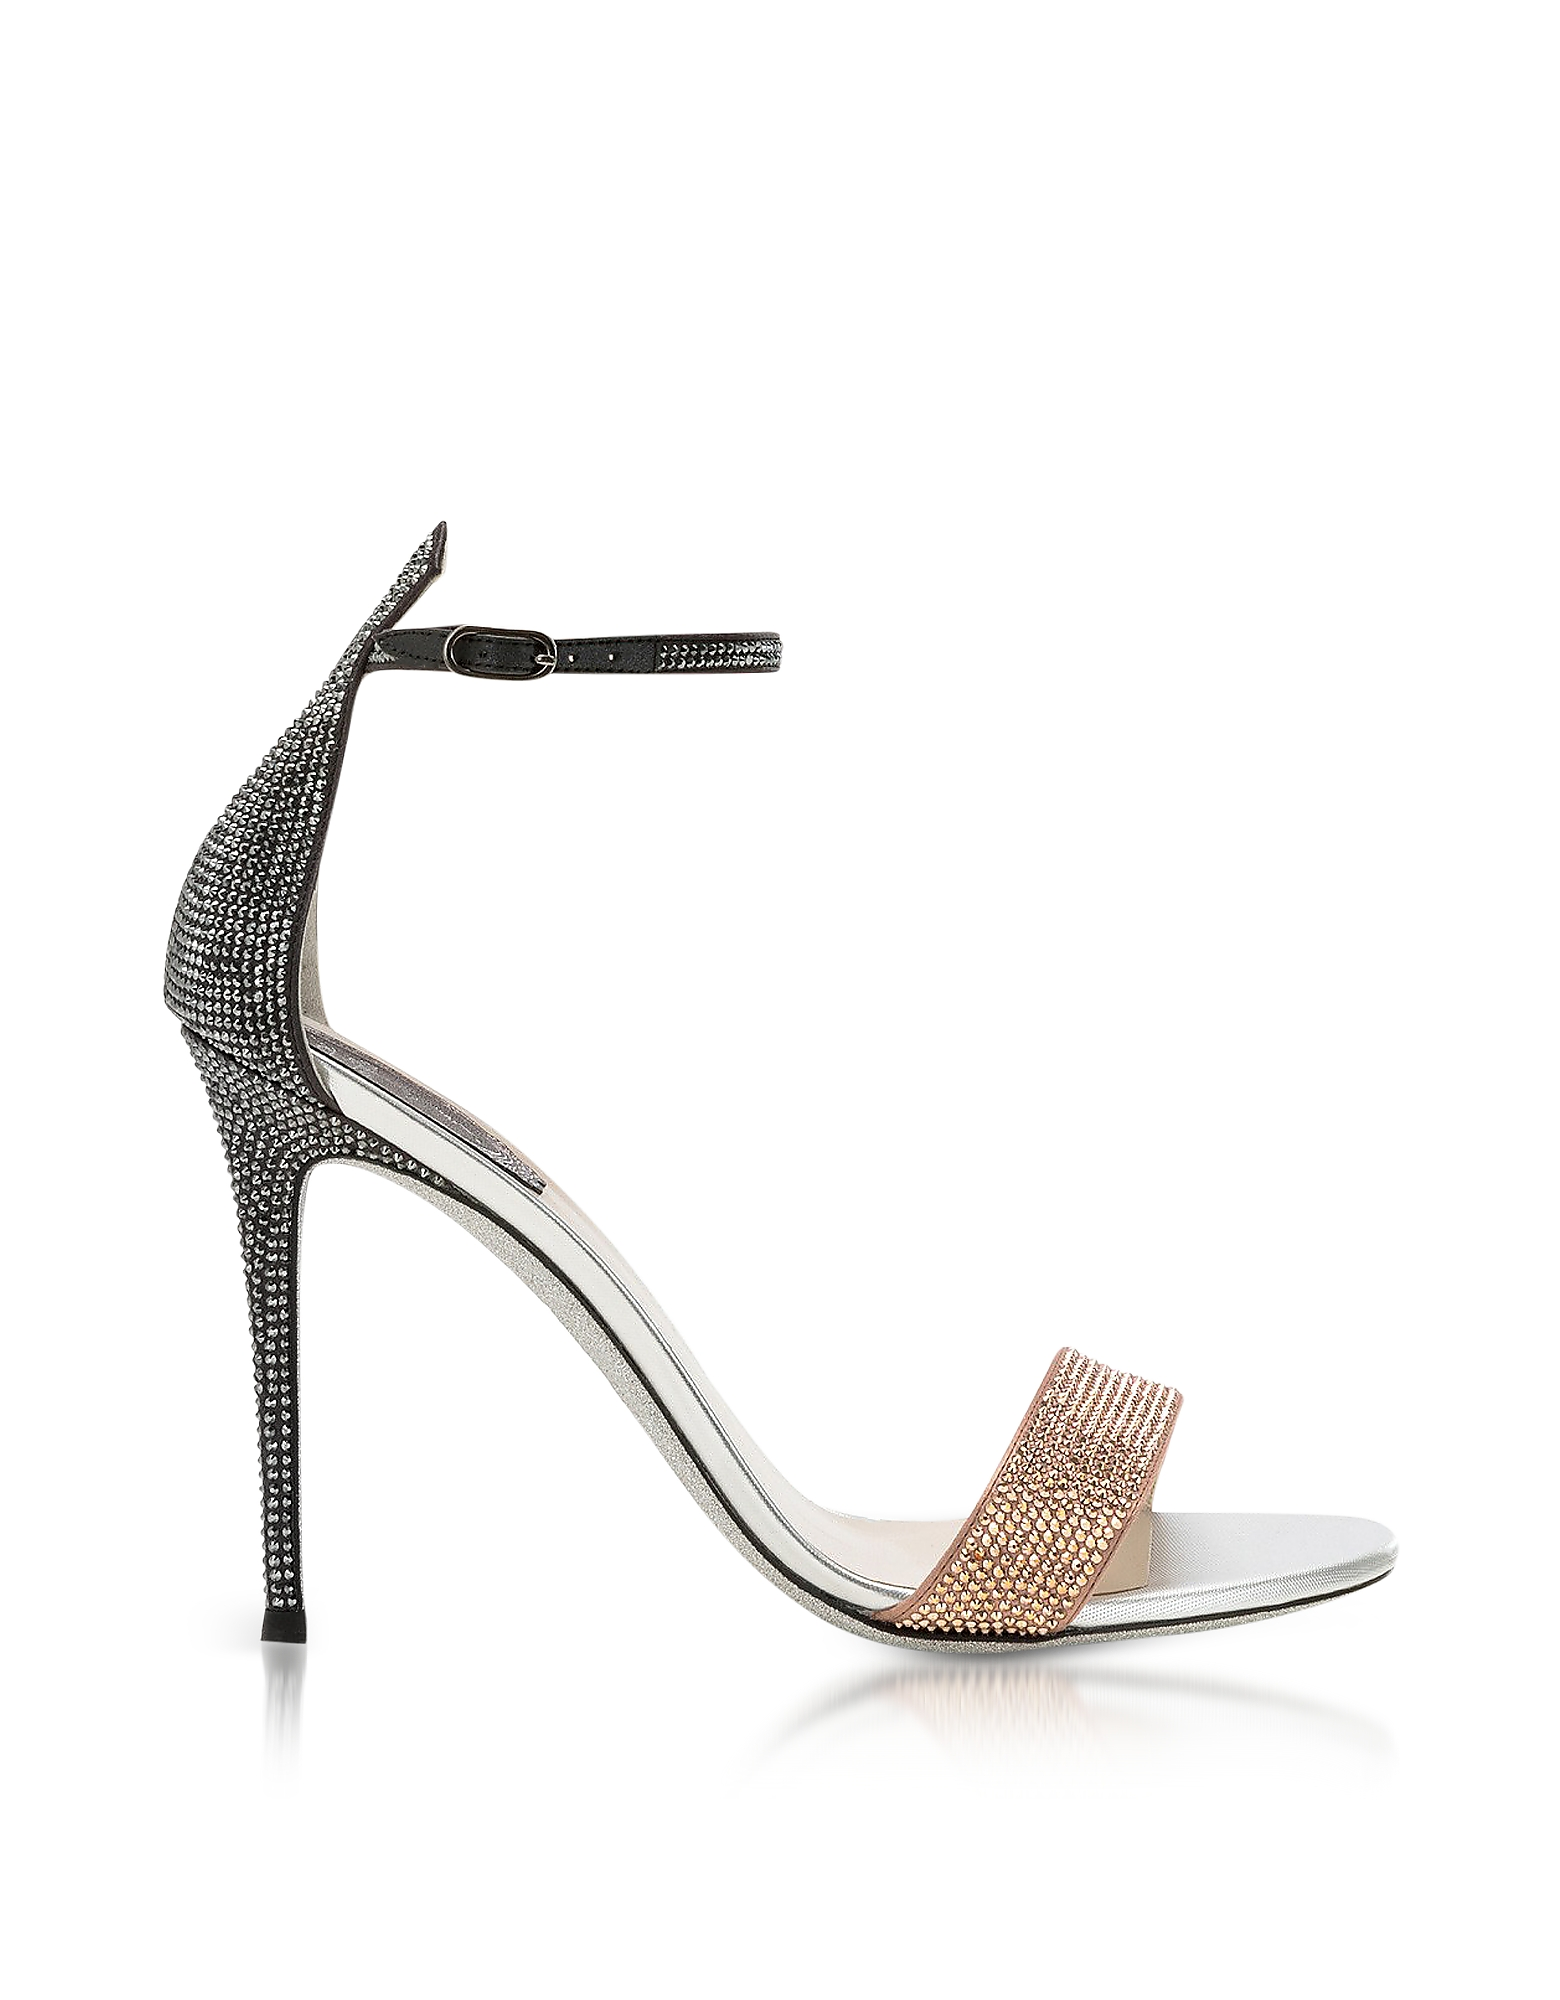 Rene Caovilla Shoes, Celebrita Two-tone Satin Sandals w/Crystals